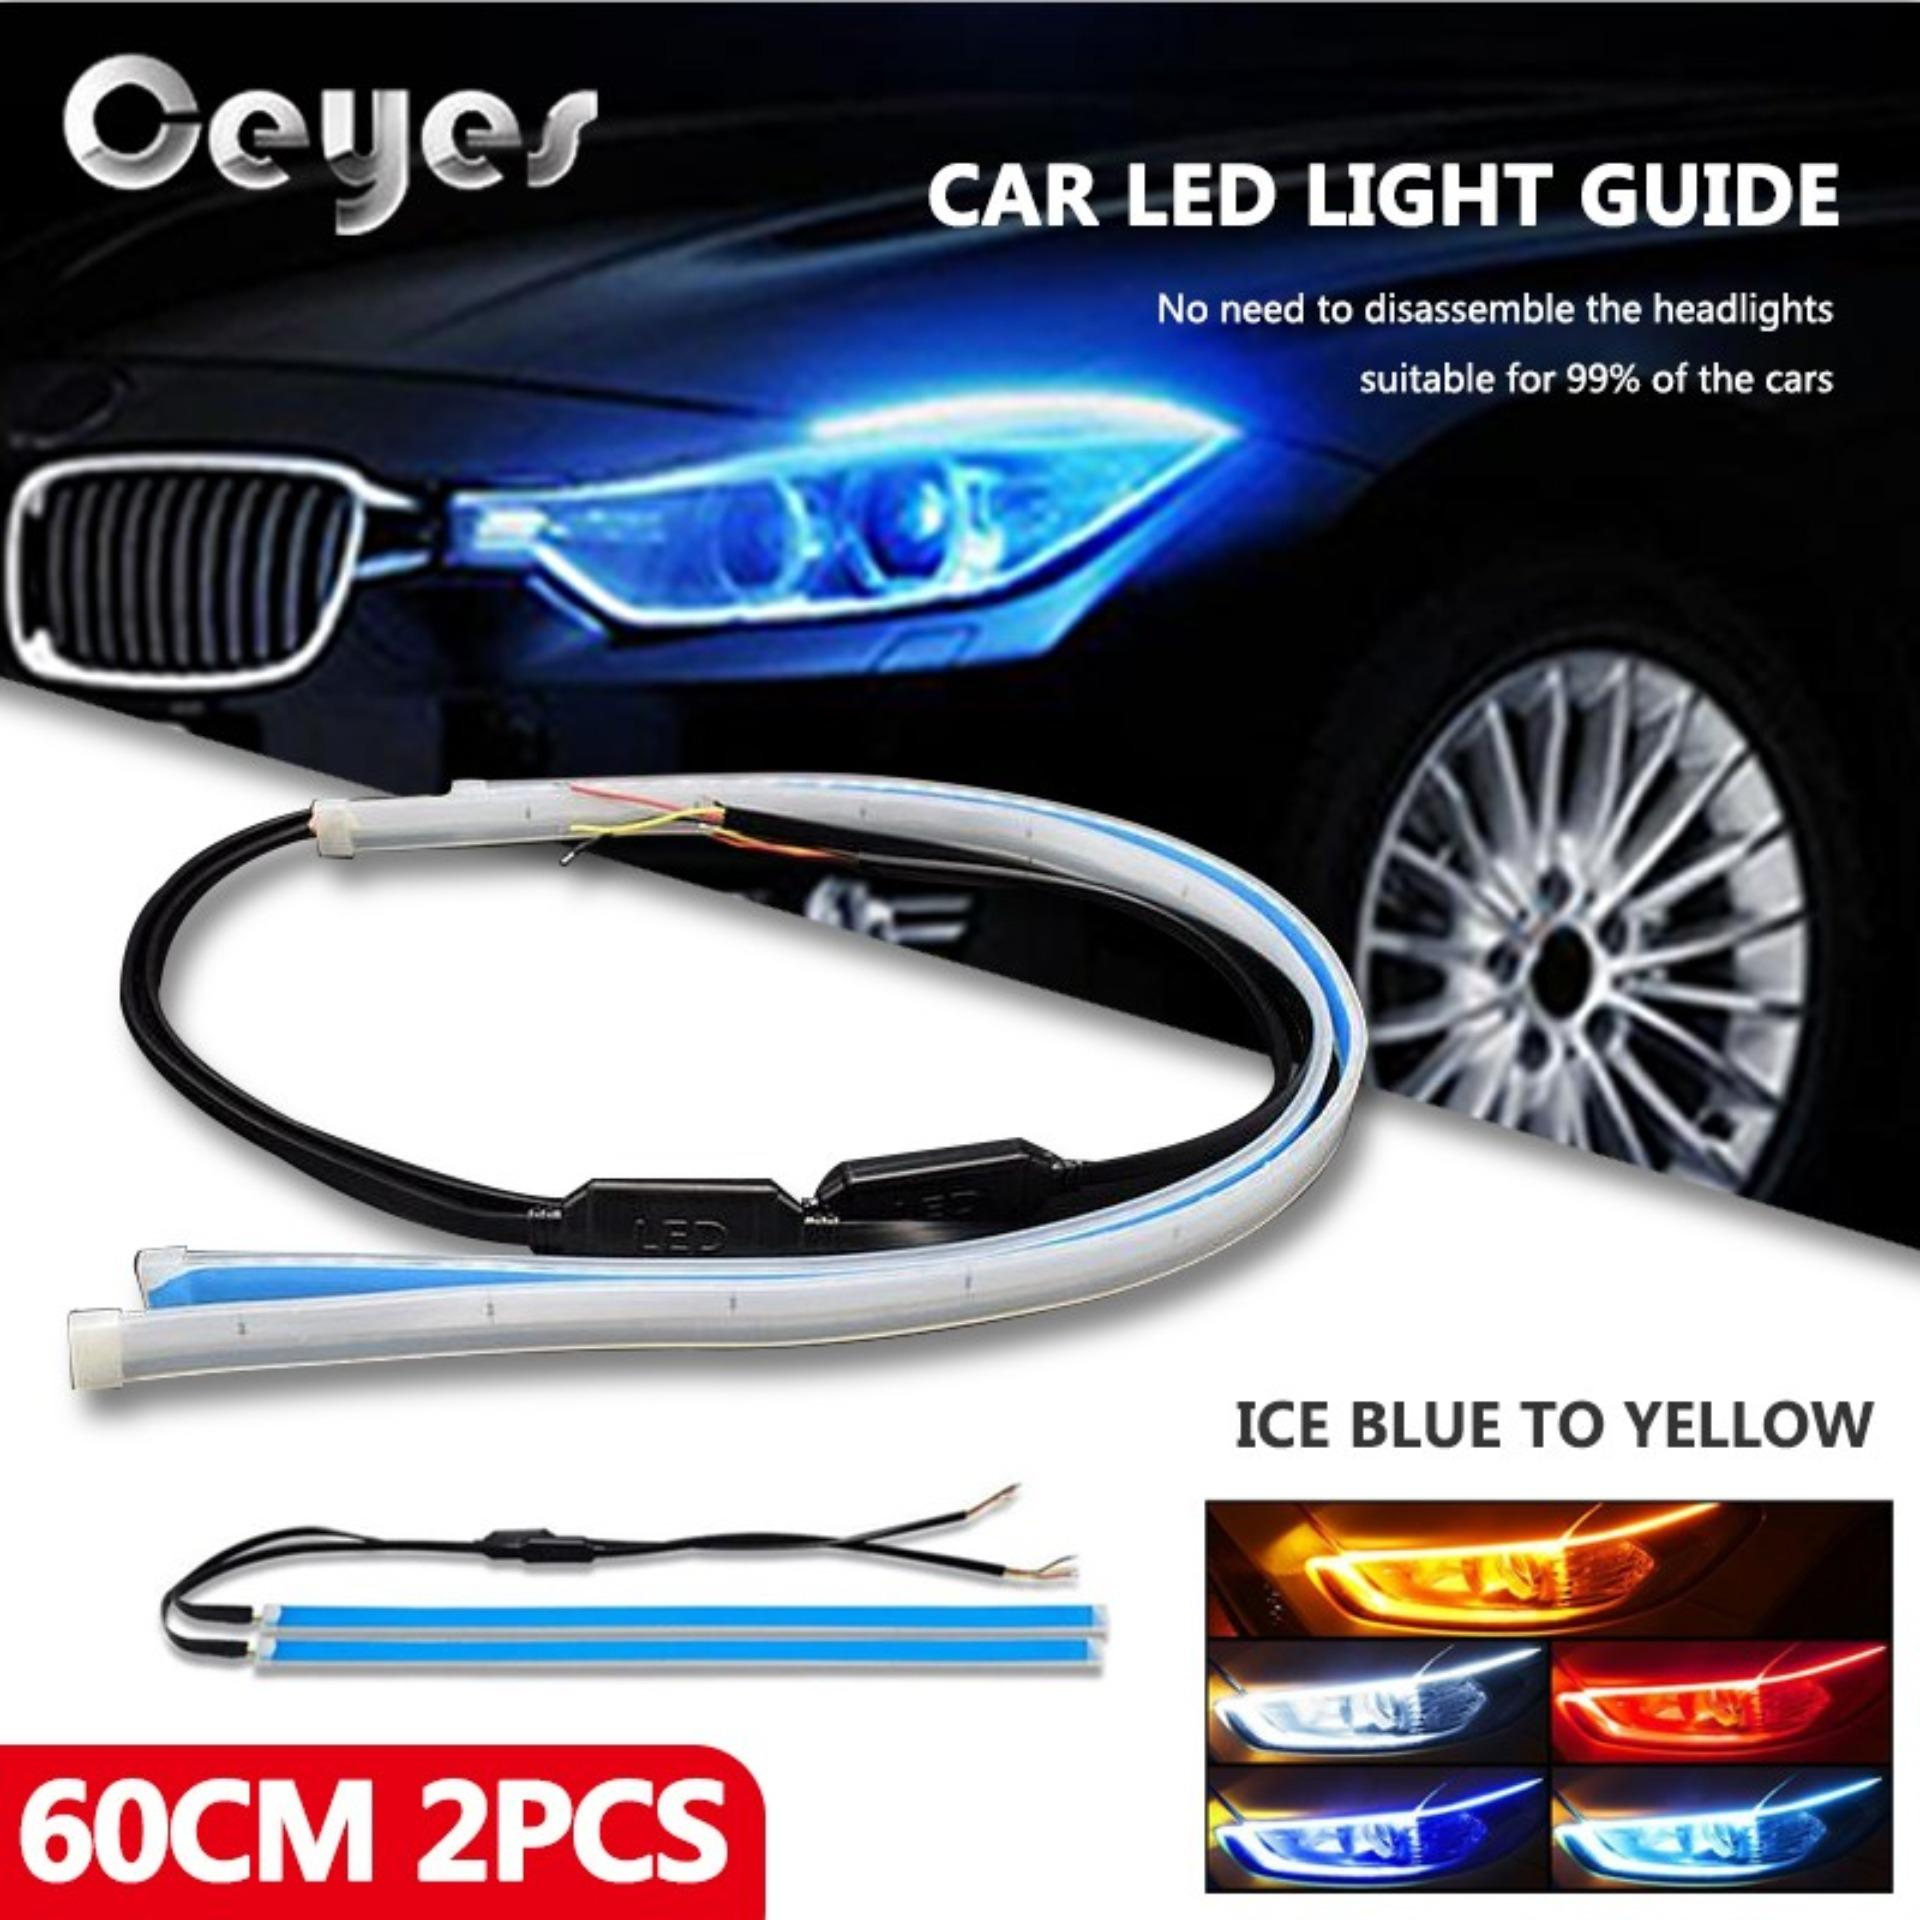 60cm 2pcs Auto Lamps Ultra Thin External Streamer Light Guide Two Color For Cars Drl Led Daytime Running Lights Car Styling Accessories Turn Signal